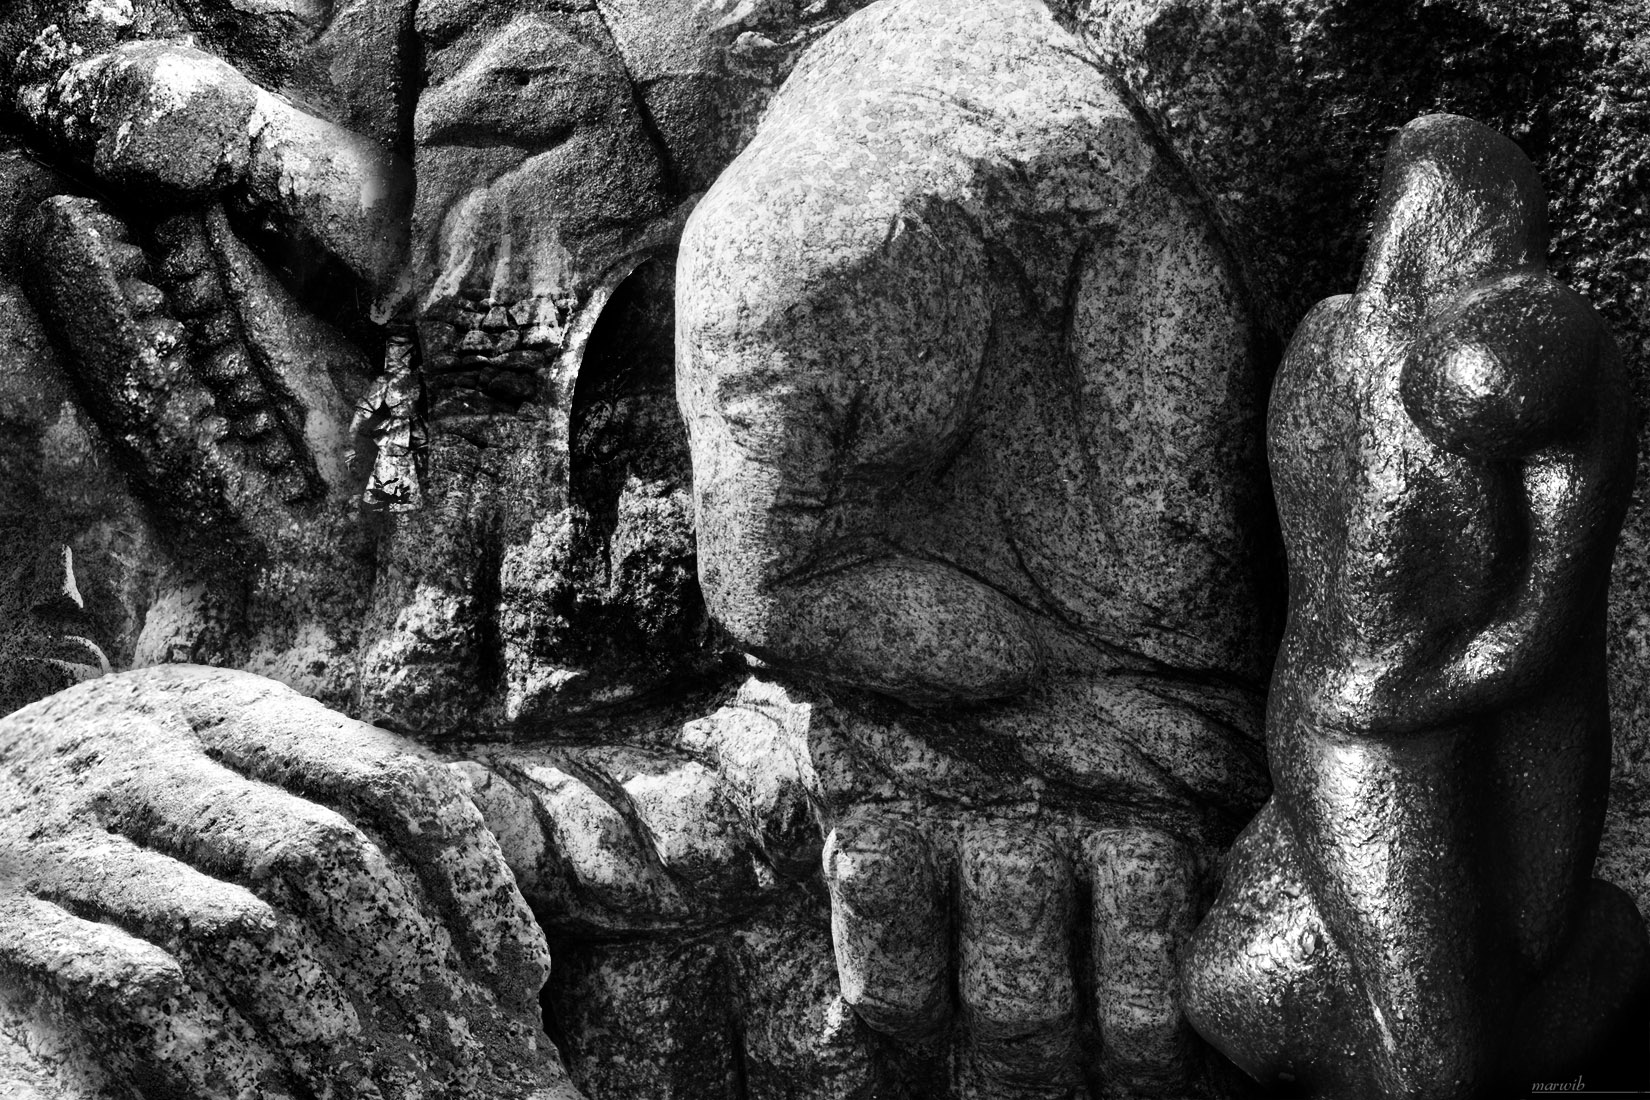 Main de sculpture en granite : montage photo en noir et blanc